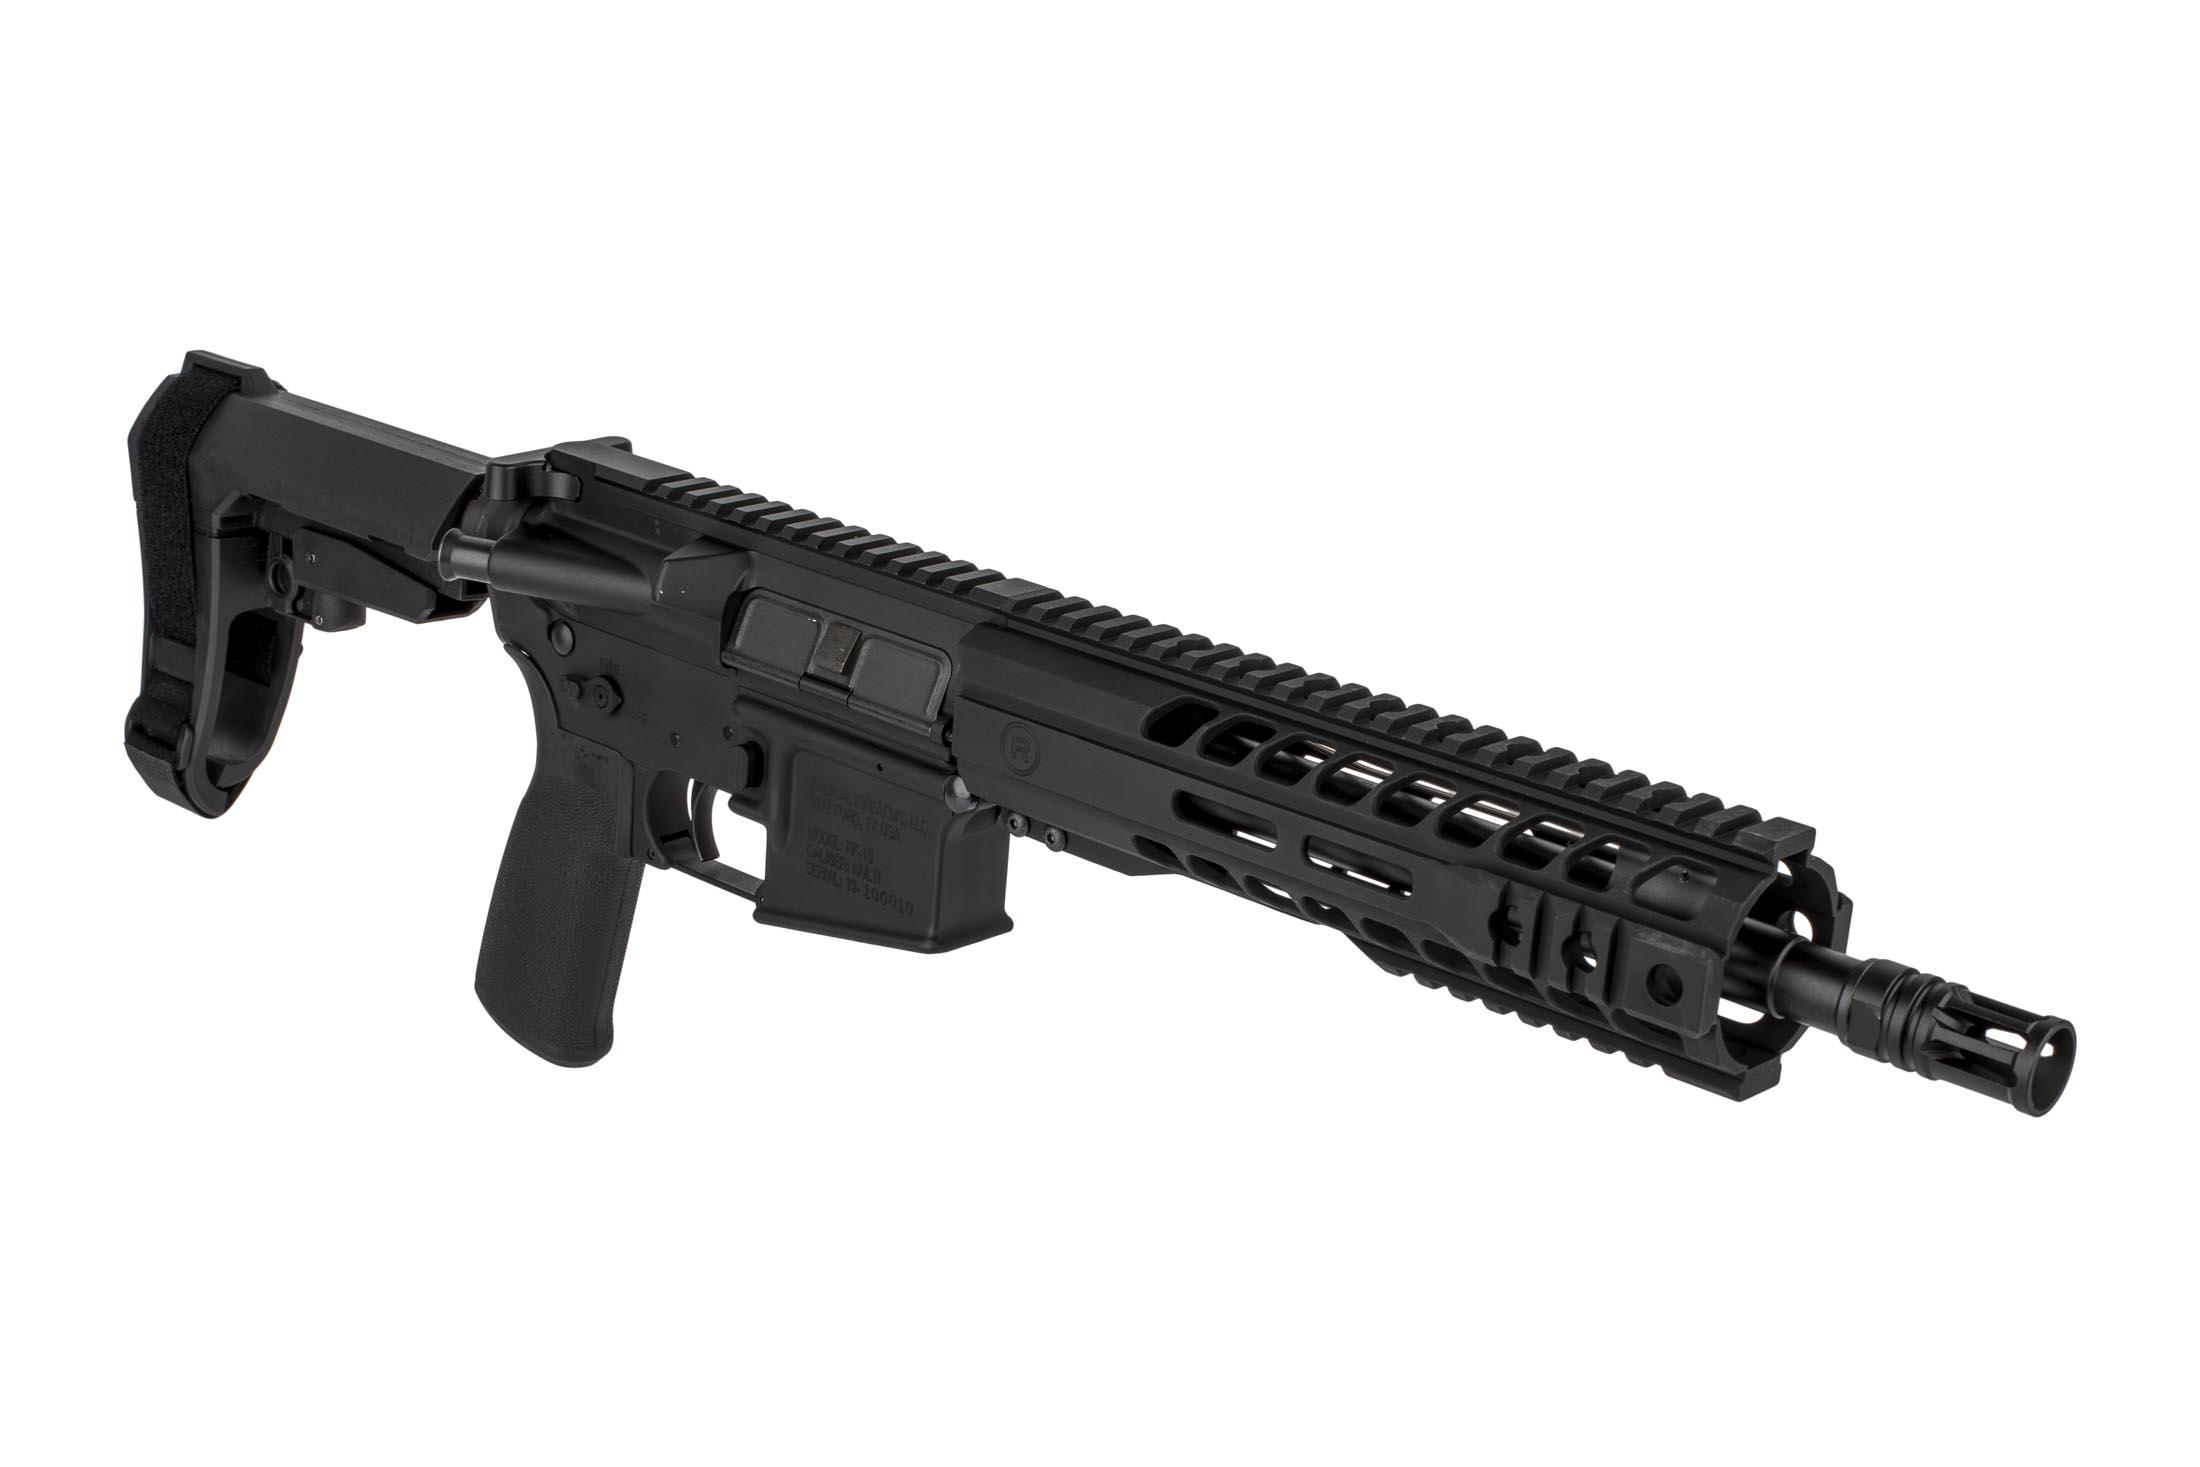 The Radical Firearms 7.62x39 AR pistol 10.5 inch barrel features a carbine length gas system